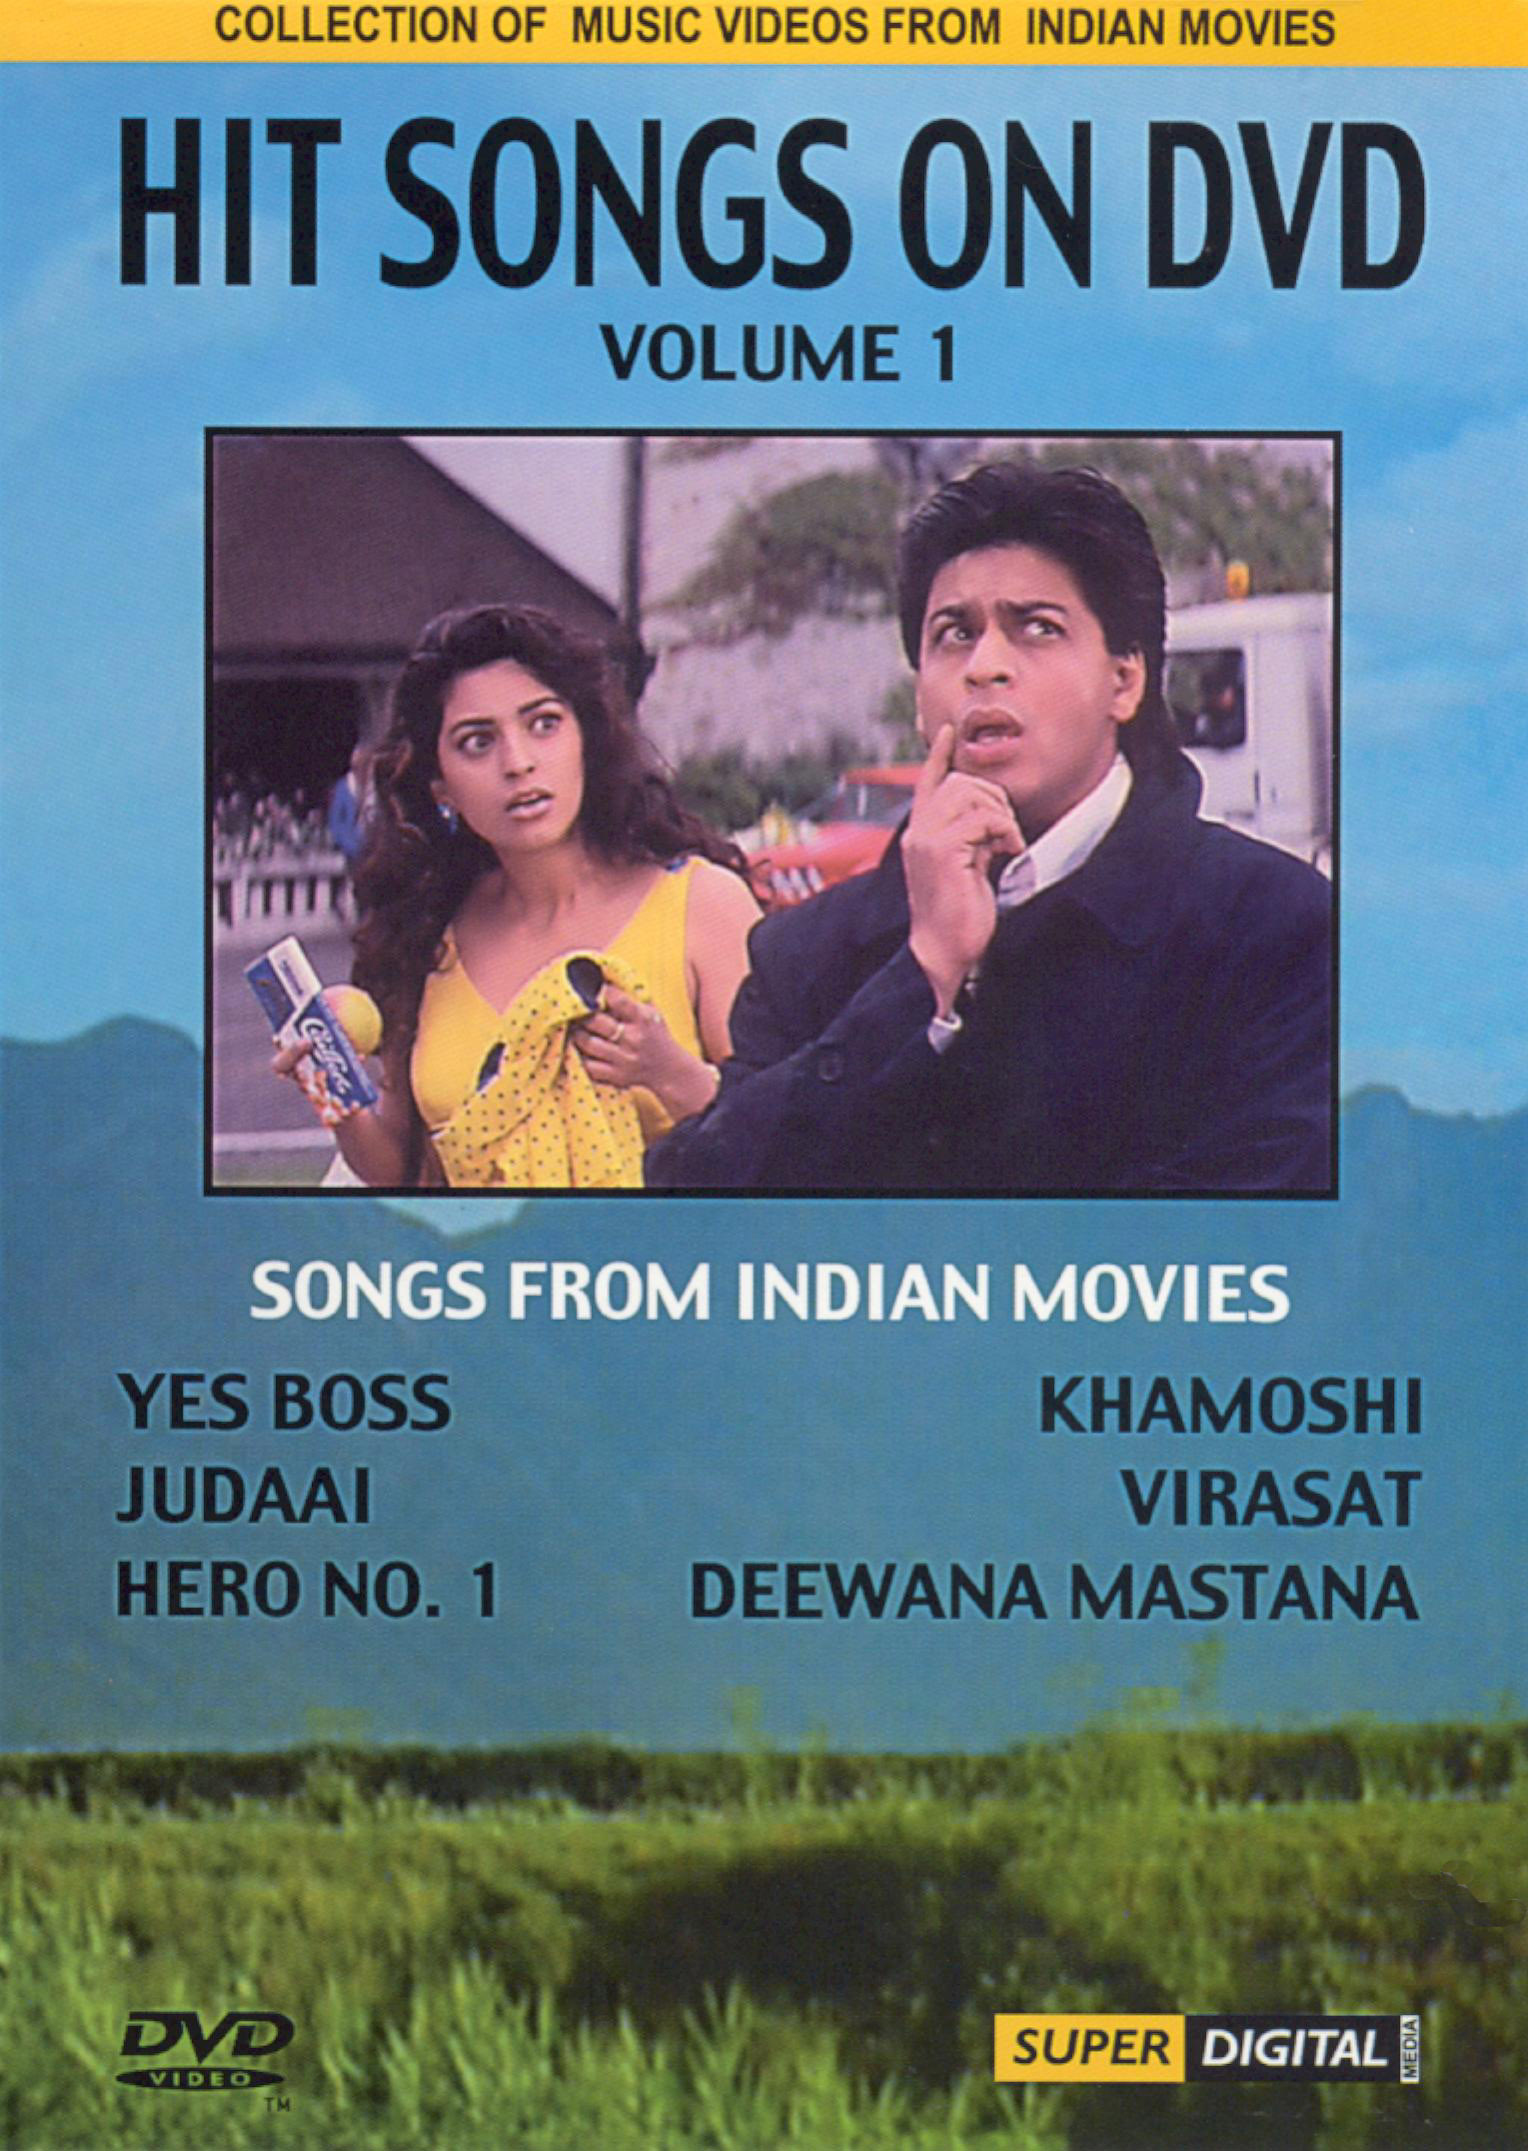 Hit Songs on DVD, Vol. 1: Songs from Indian Movies